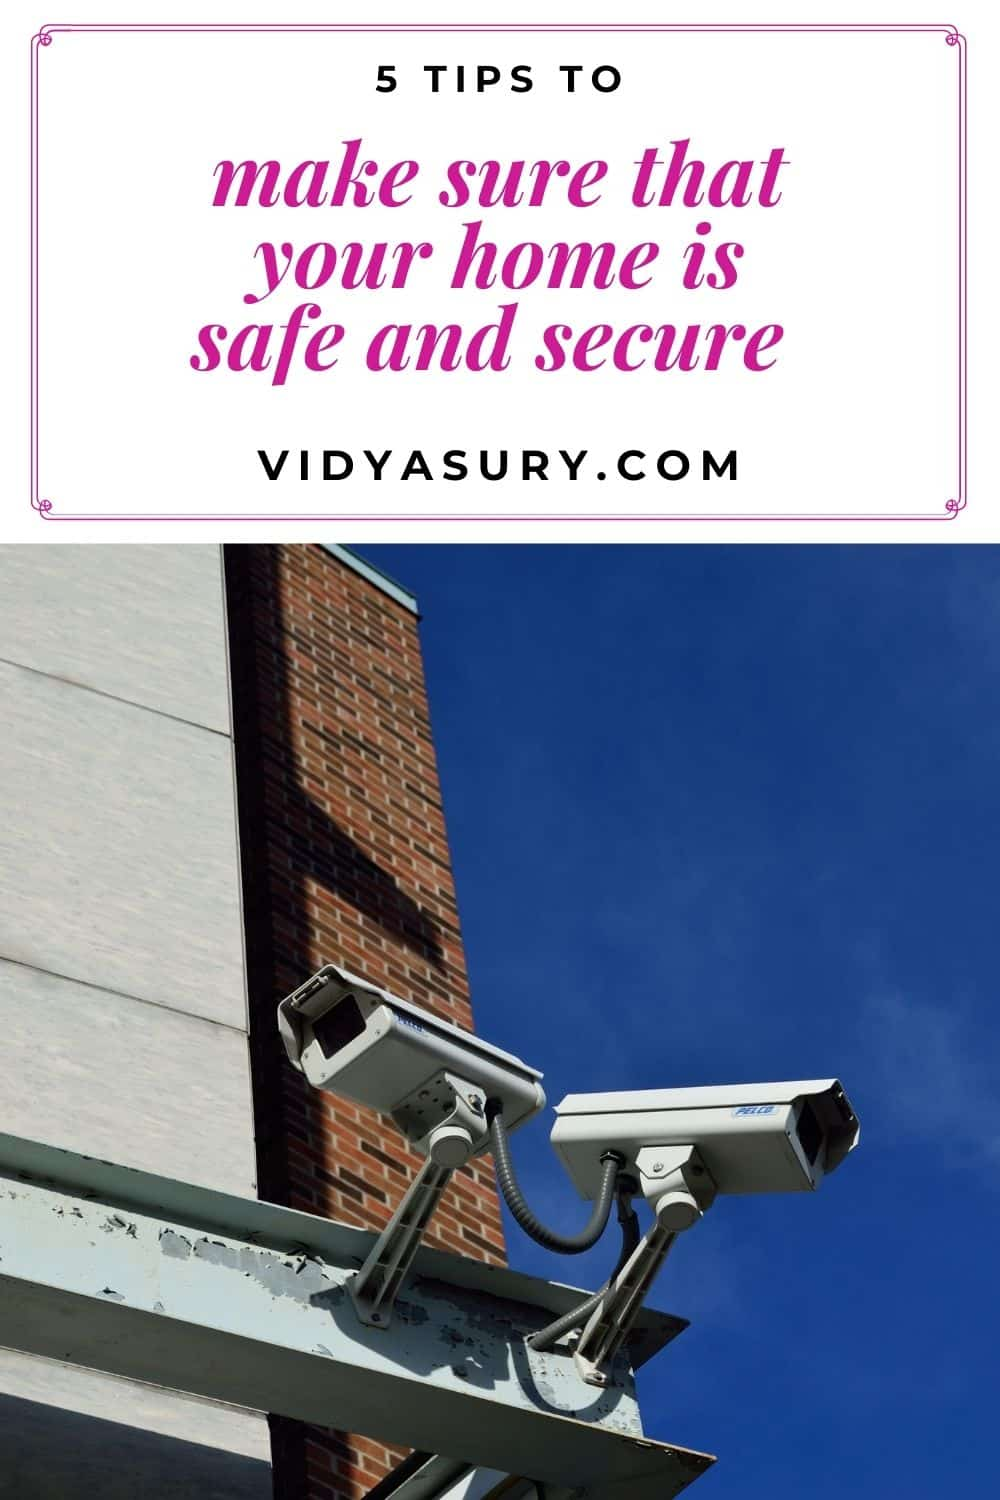 5 tips to create a safe and secure environment at home